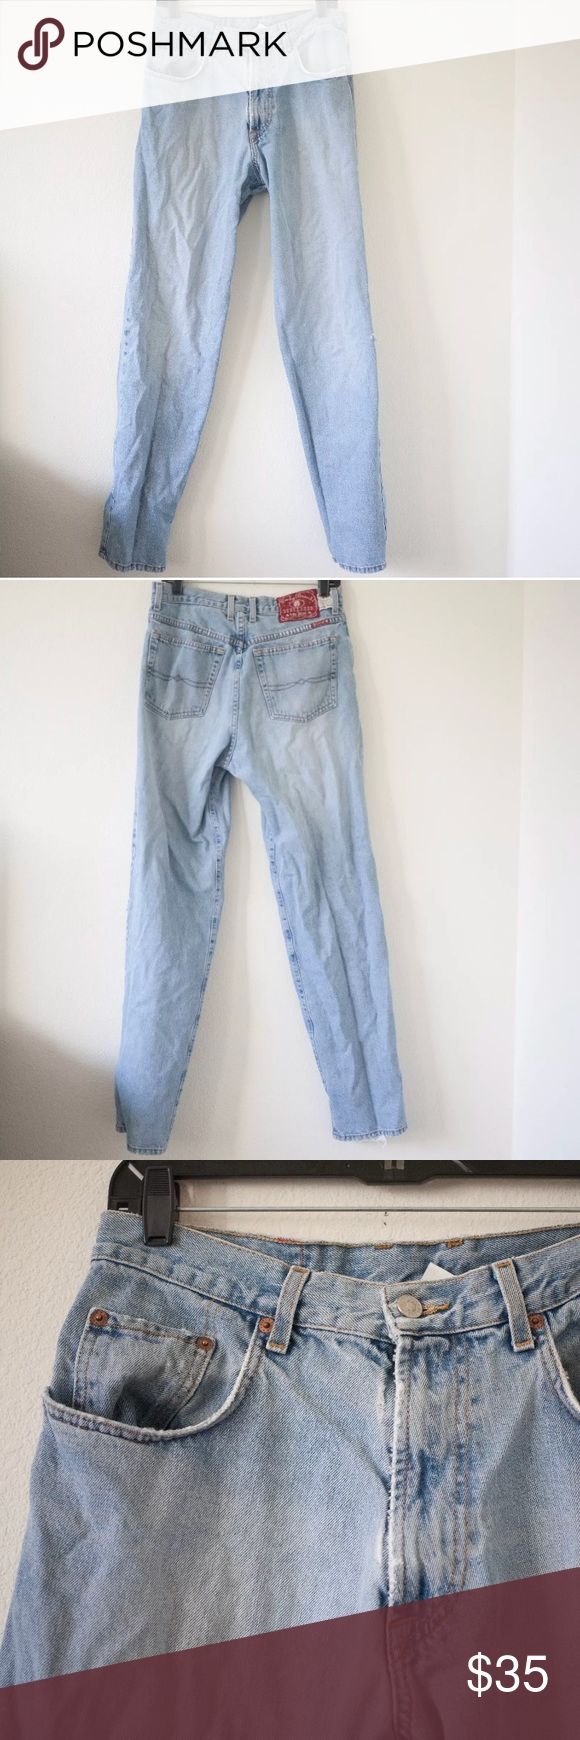 """[Lucky Brand] Dungaree Jeans Men's Item is in very good condition. Very minor flaws will be pictured if any. See photos. There is some wear on the bottom.   Approximate flat measurements:  Length: 44""""  Inseam: 33""""   I do my best to check for holes and stains and describe items accurately. Any flaws are noted and photographed. Please see measurements for sizing.   G52 Lucky Brand Jeans Straight"""